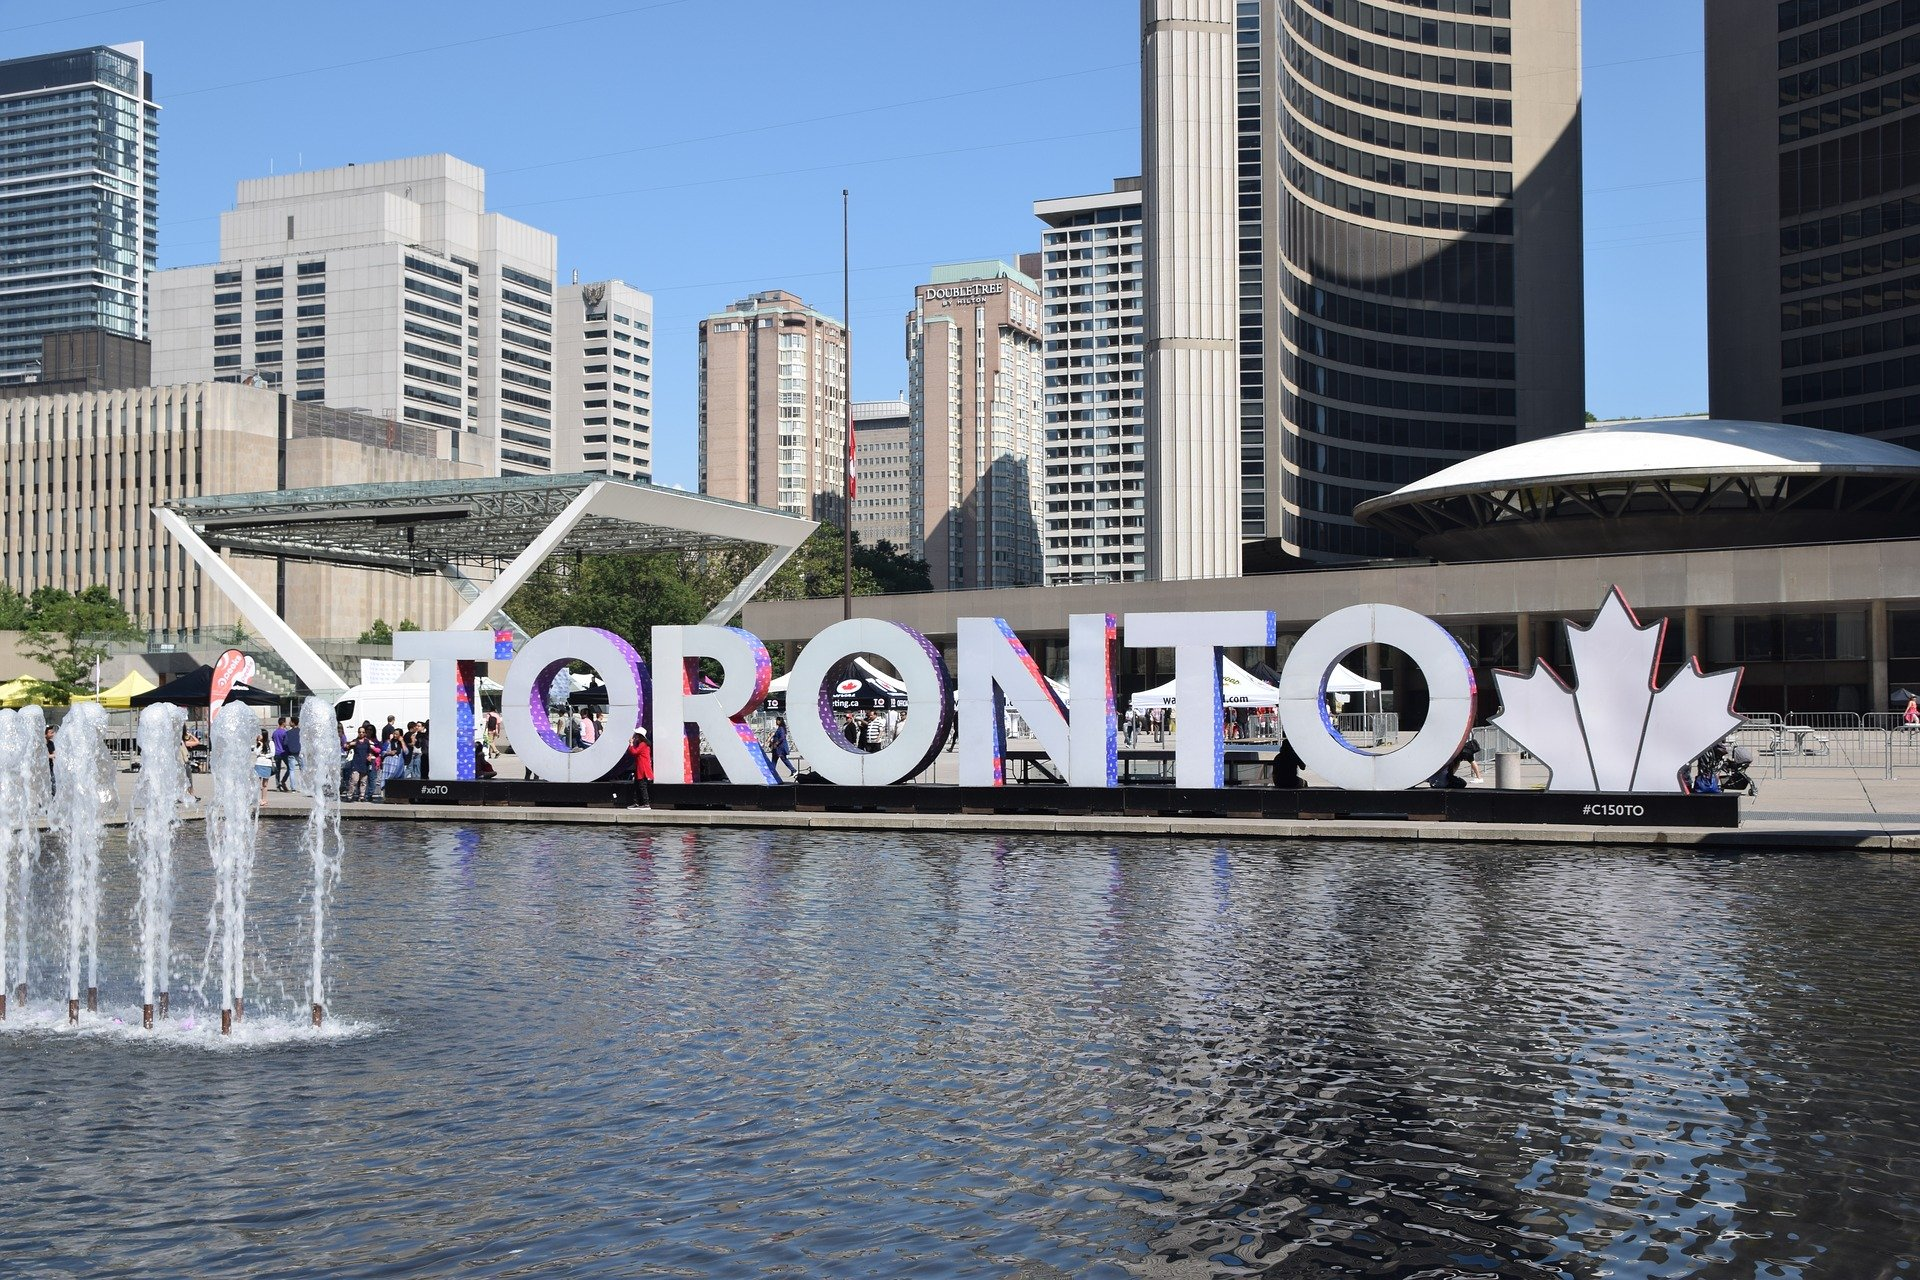 Toronto sign by City Hall